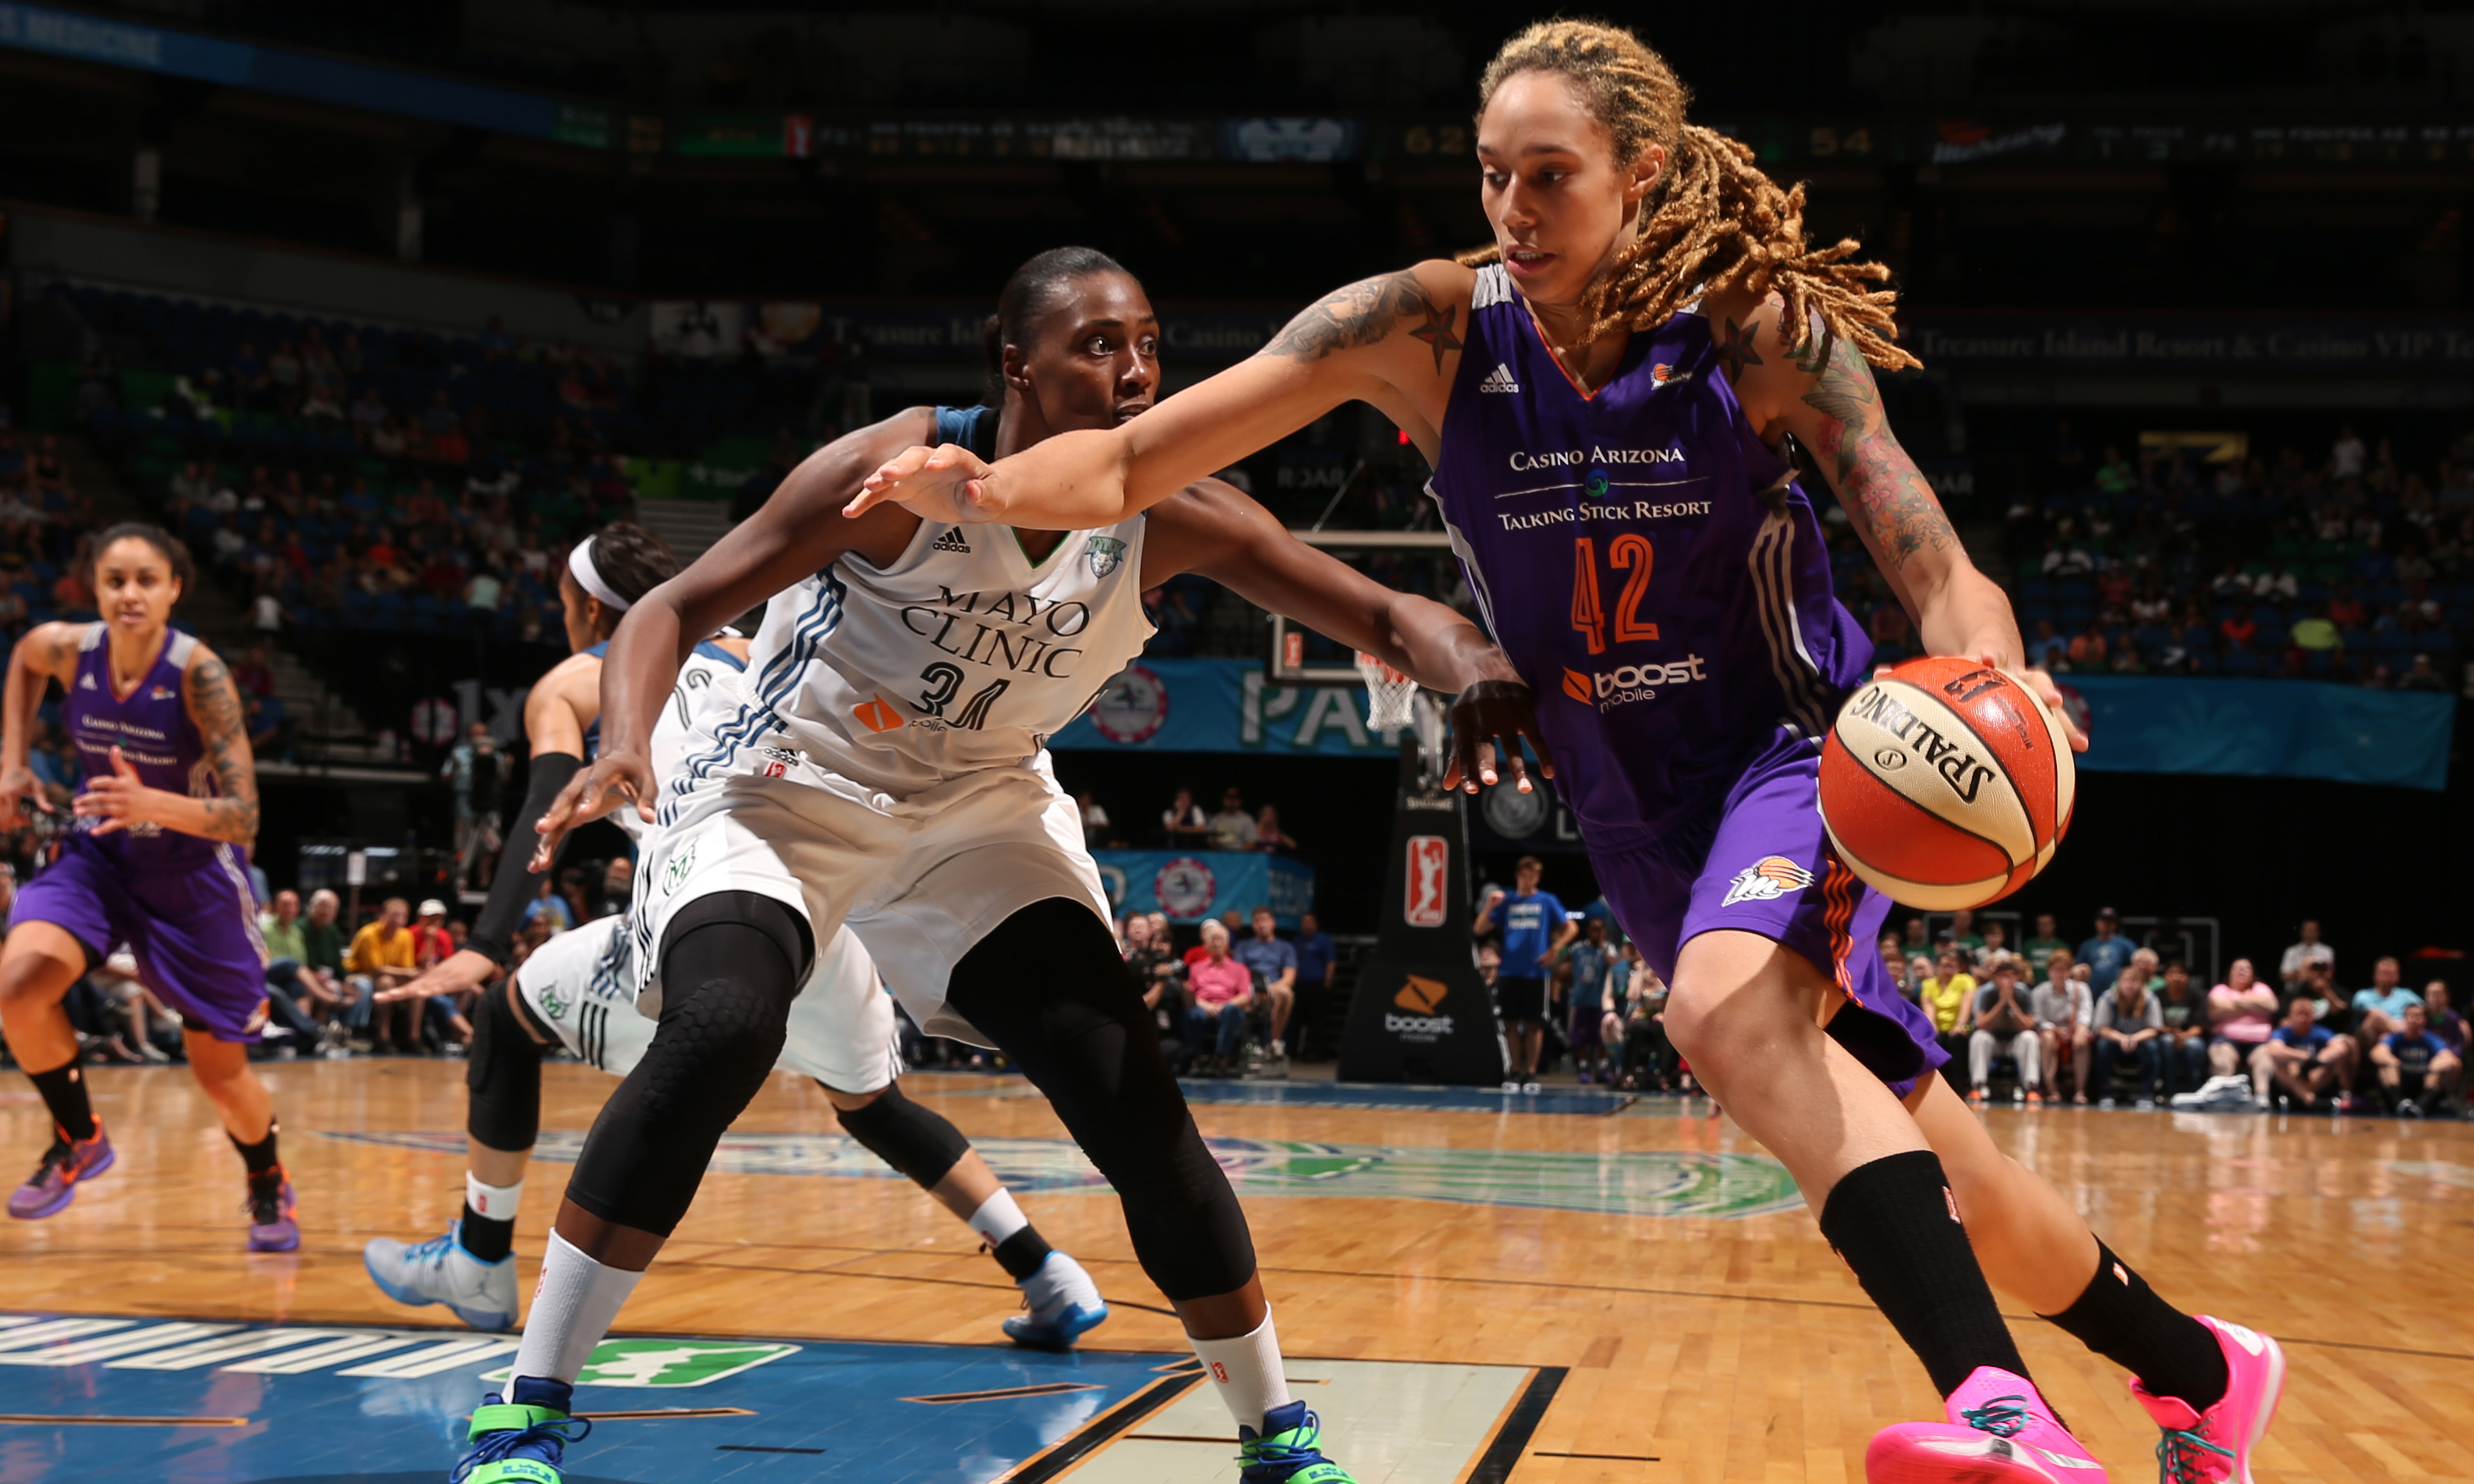 Mercury center Brittney Griner was held scoreless in the second half but finished with 13 points, seven rebounds and nine blocks.